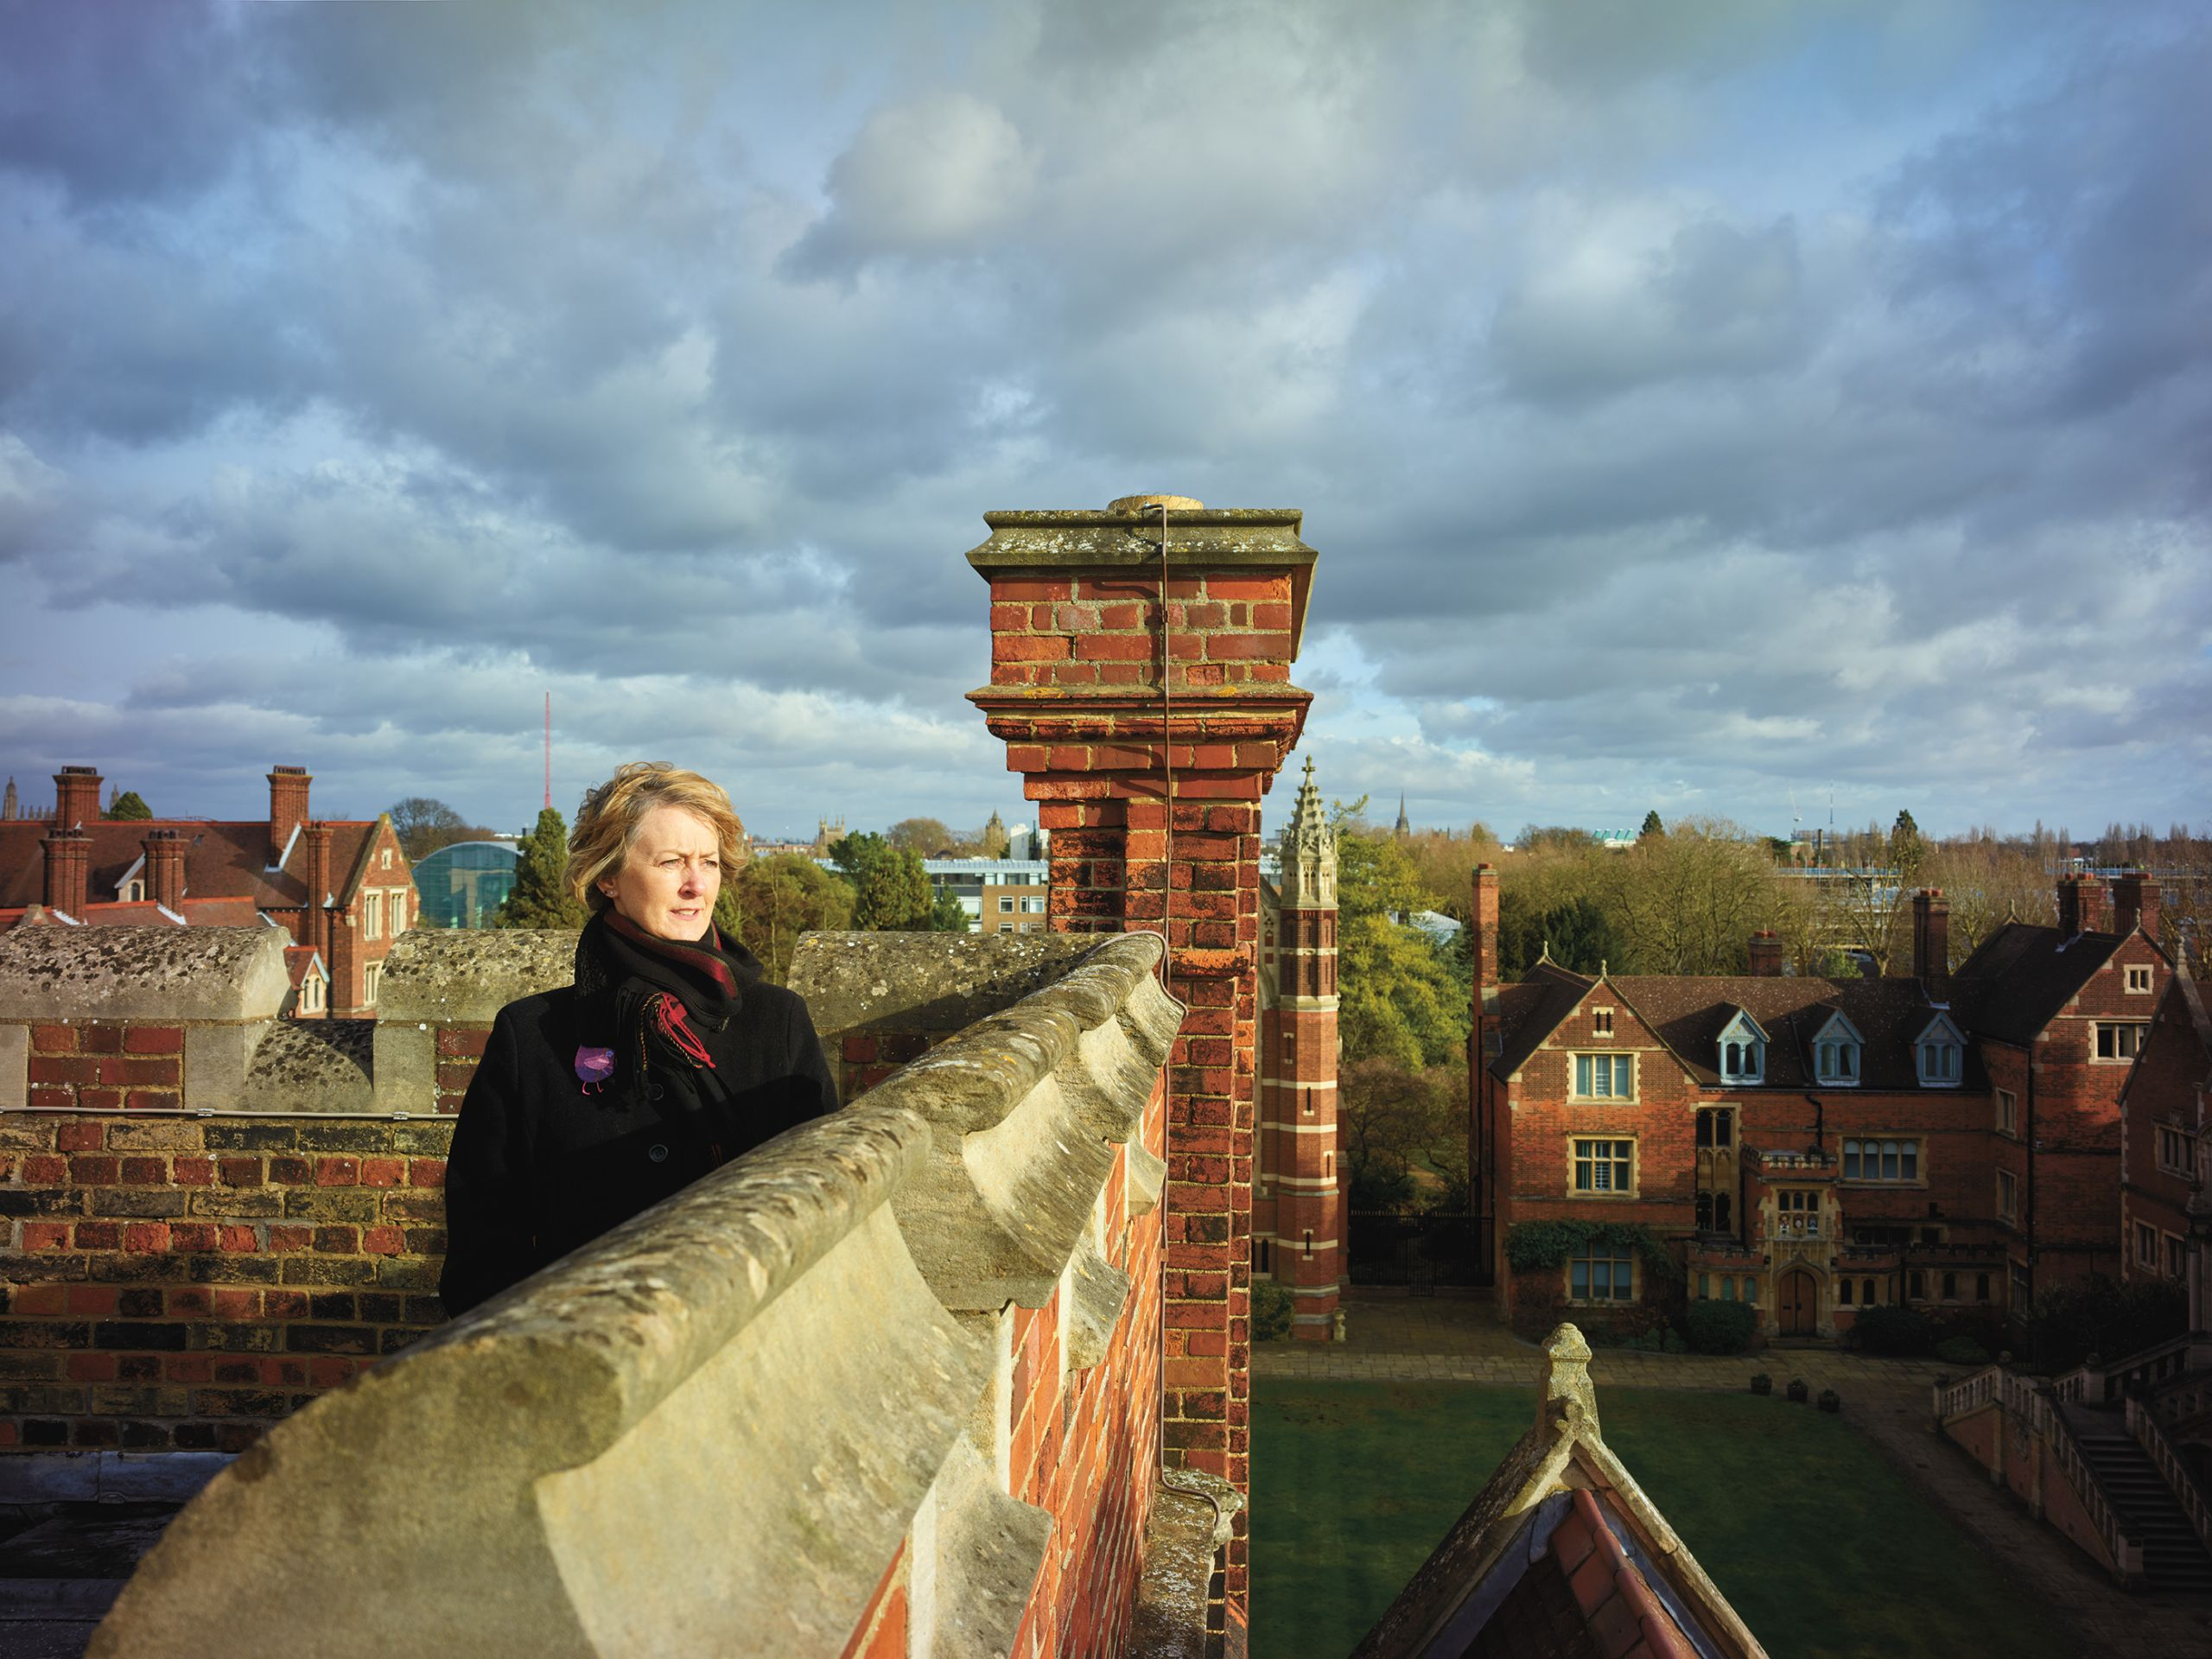 Helen Stephens, Selwyn Head Porter, at the top of the flag tower overlooking Old Court.